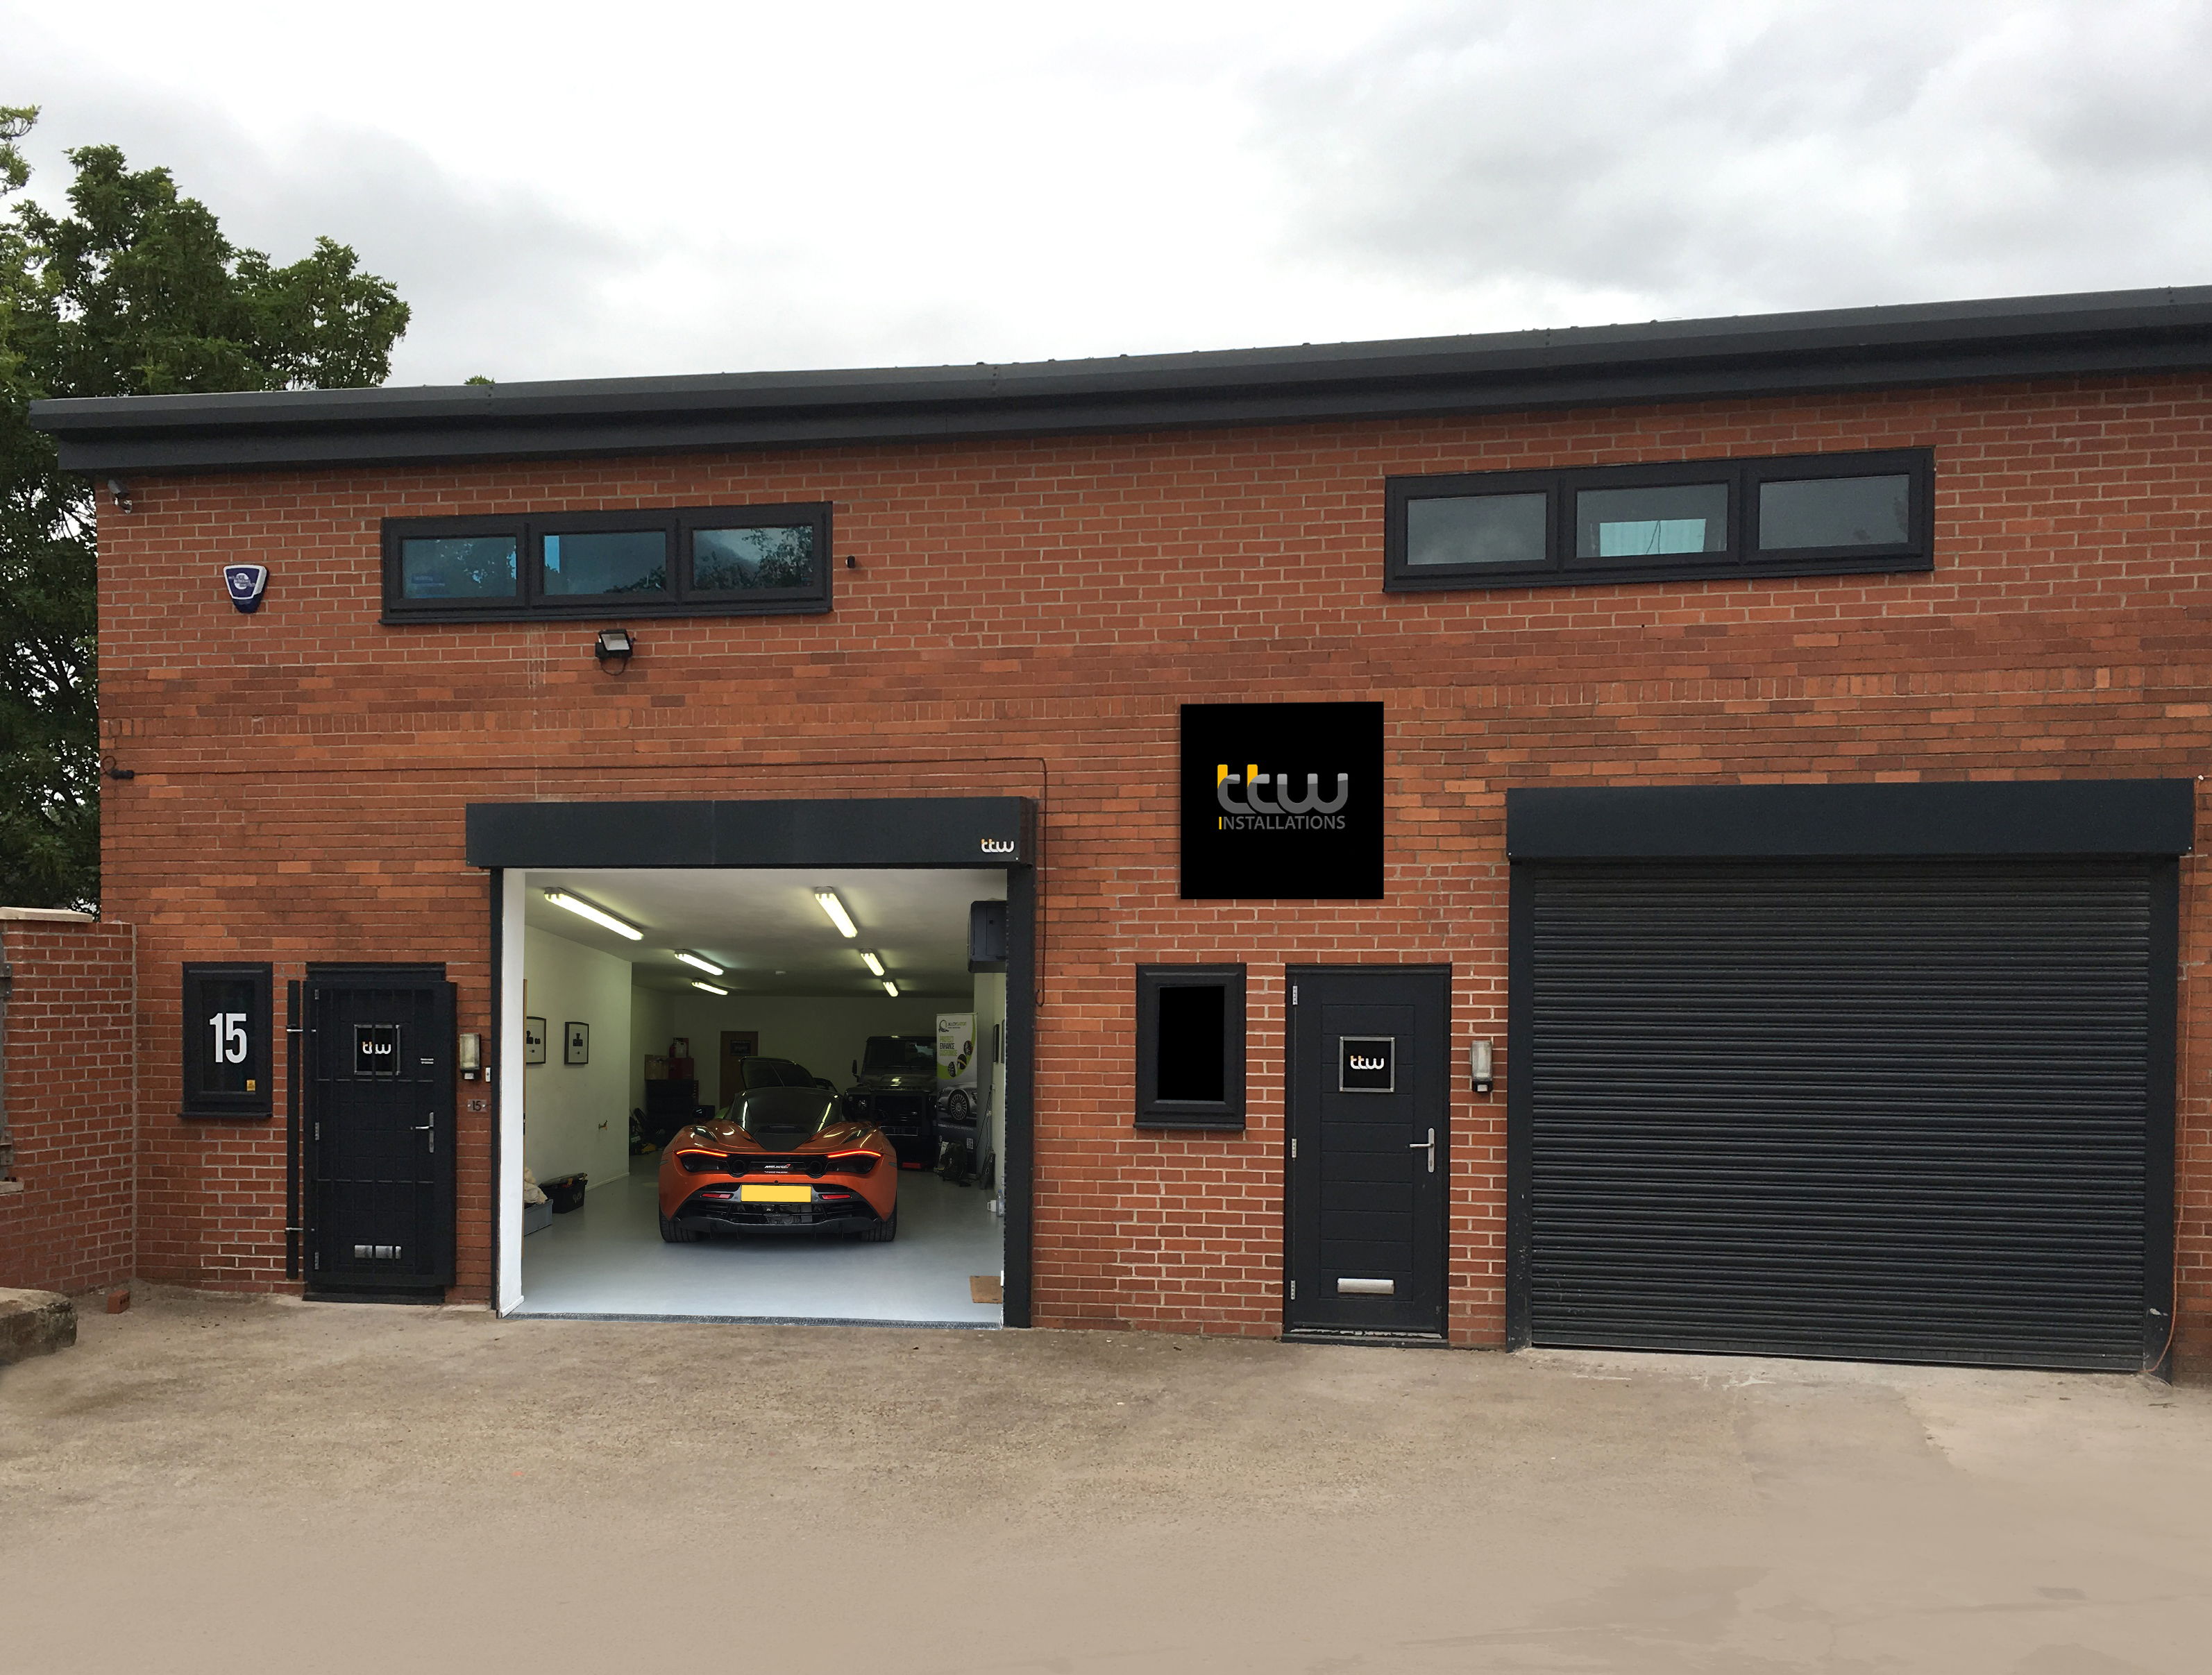 TTW Installations - UK's Leading Automotive Vehicle Accessories Supplier and Professional Installations - Nottingham - Derby - UK